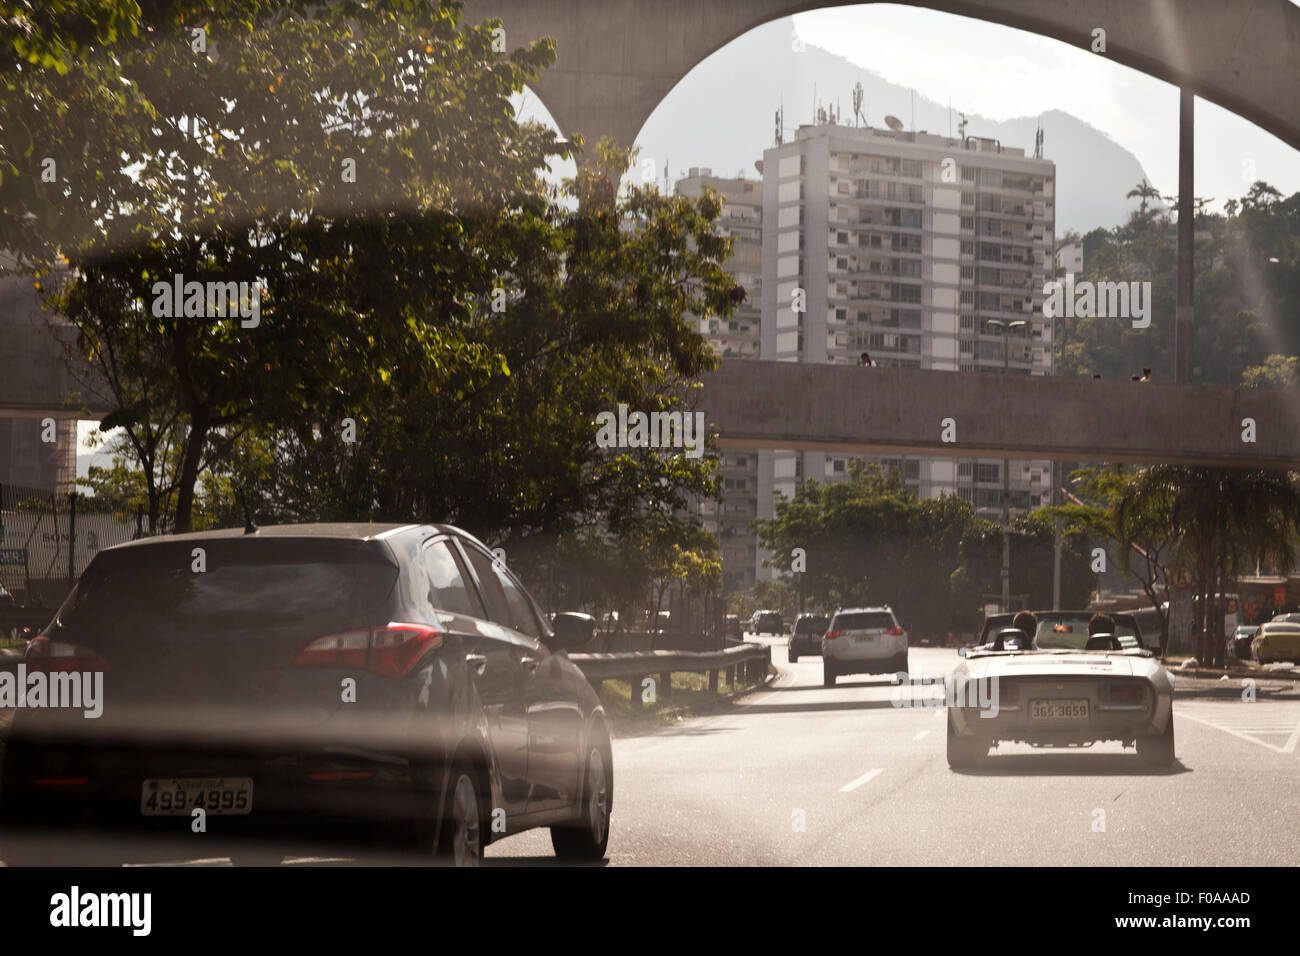 Cars travelling on road, rear view - Stock Image